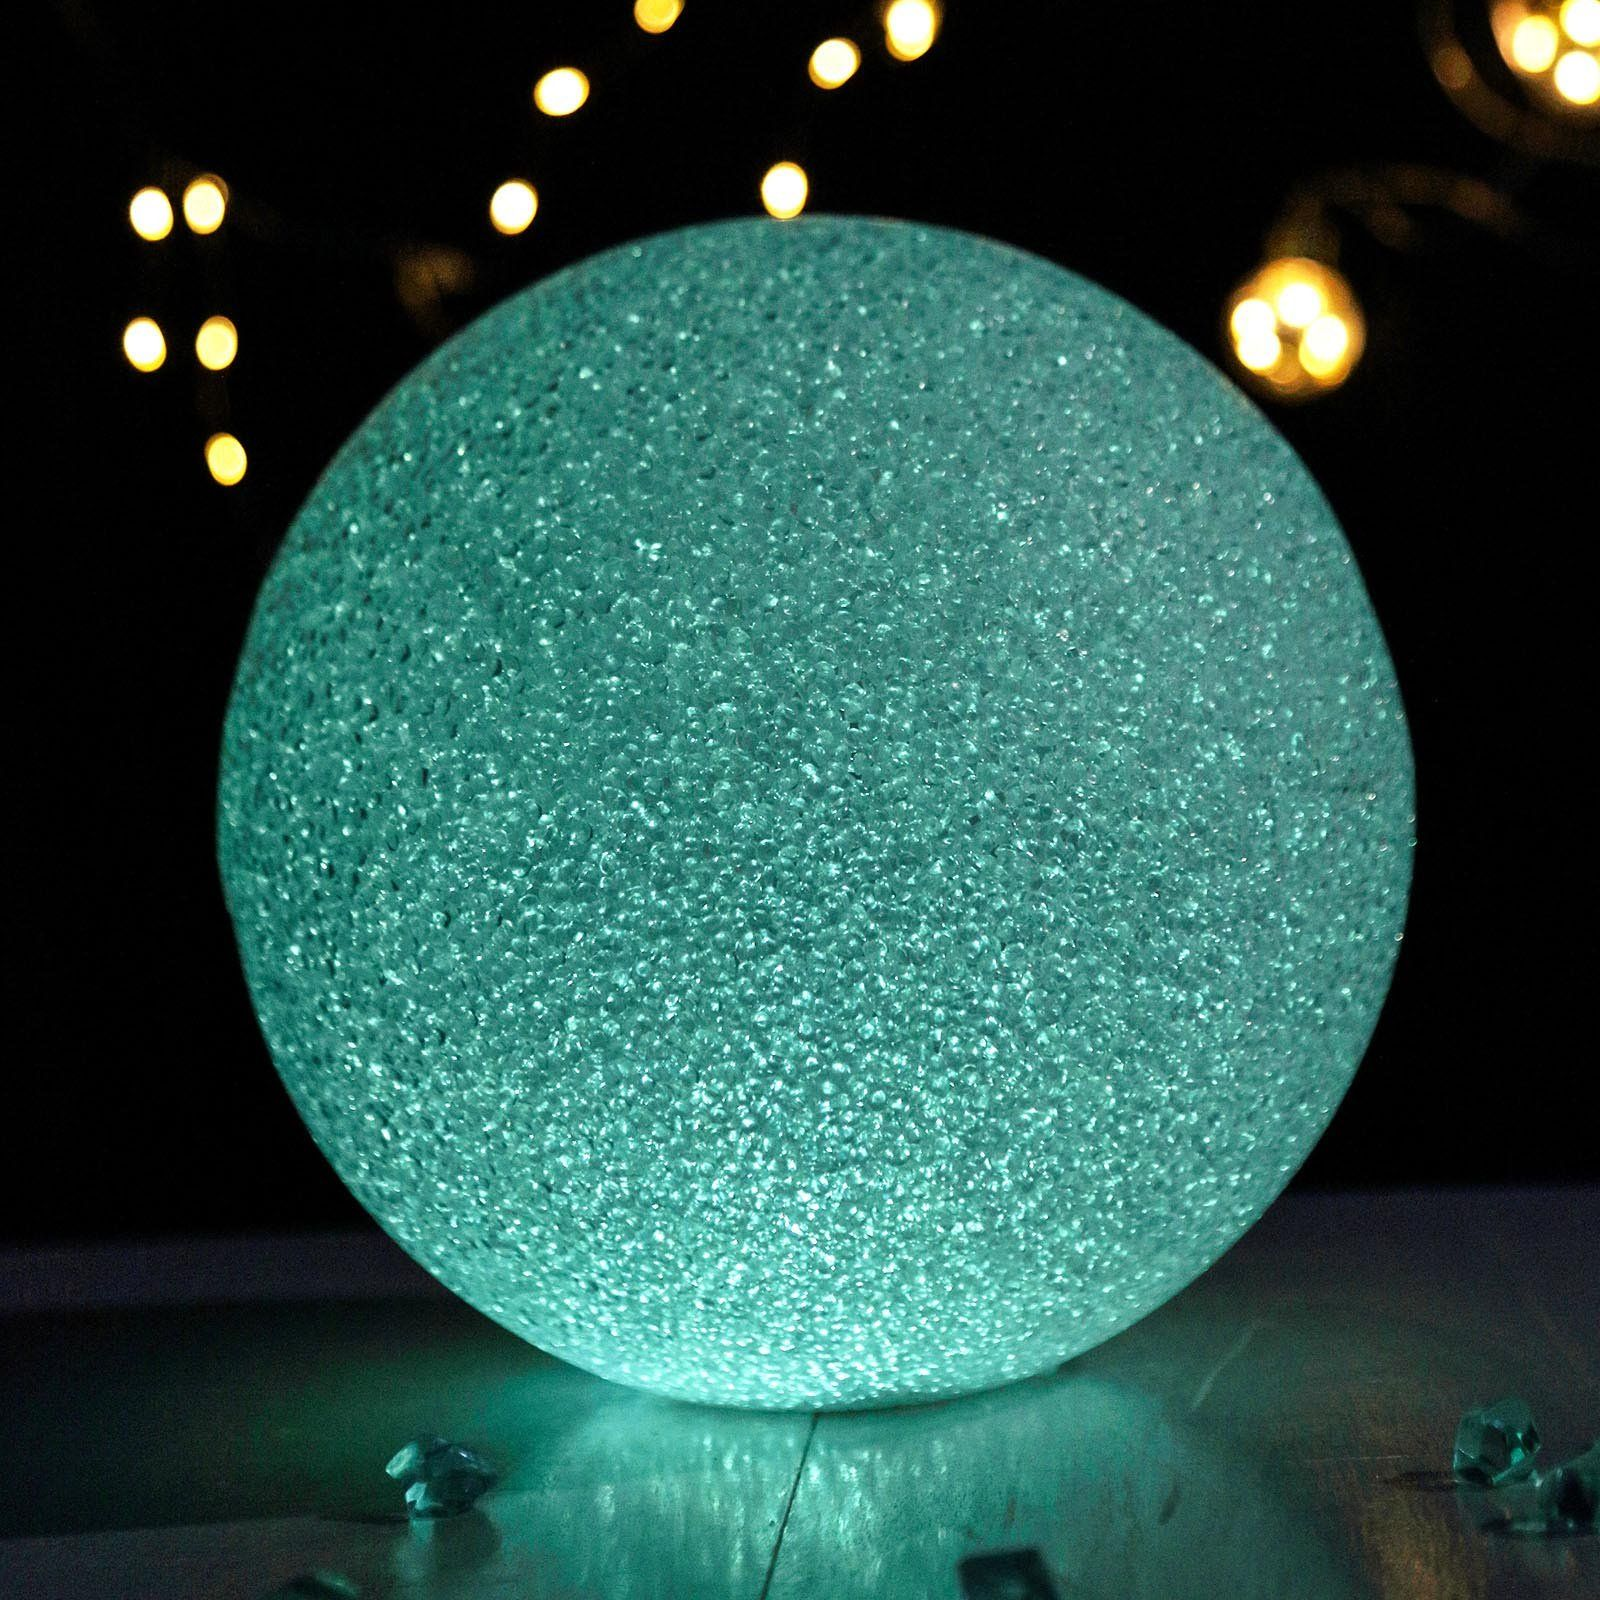 10 Color Changing Portable Led Centerpiece Ball Lights Battery Operated Led Orbs In 2020 Led Ball Lights Ball Lights Christmas House Lights